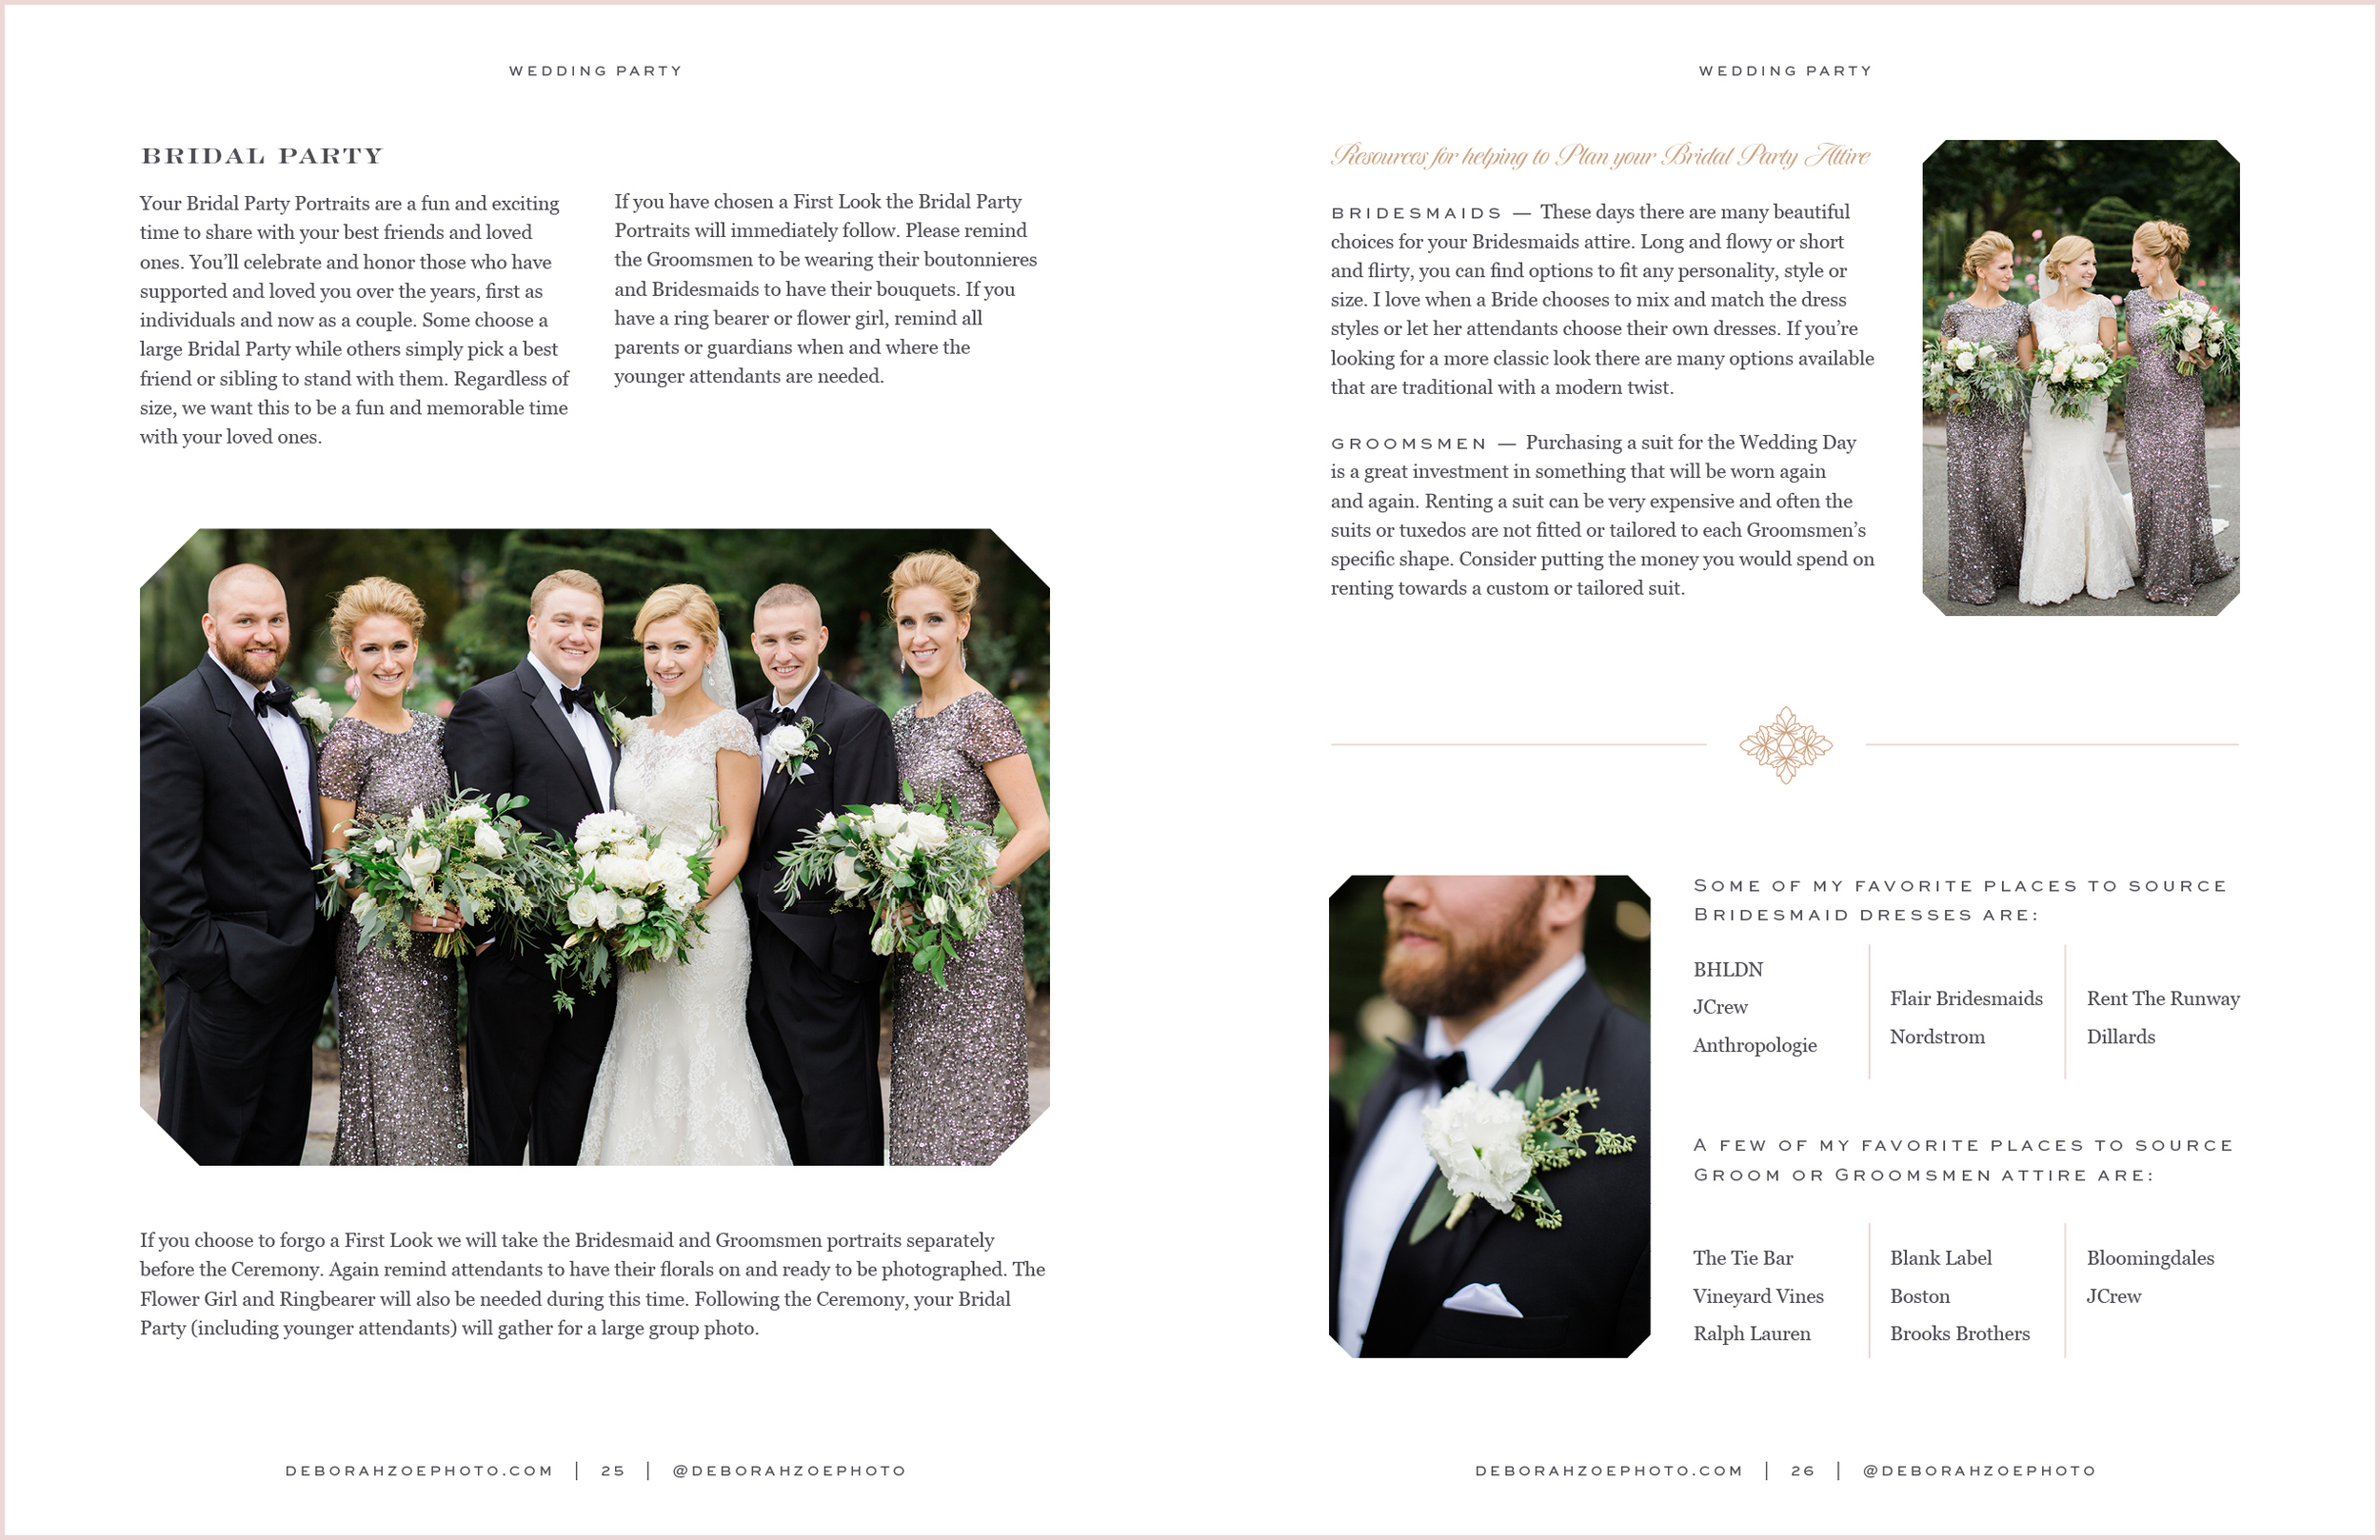 Spreads from her Wedding Guide magazine